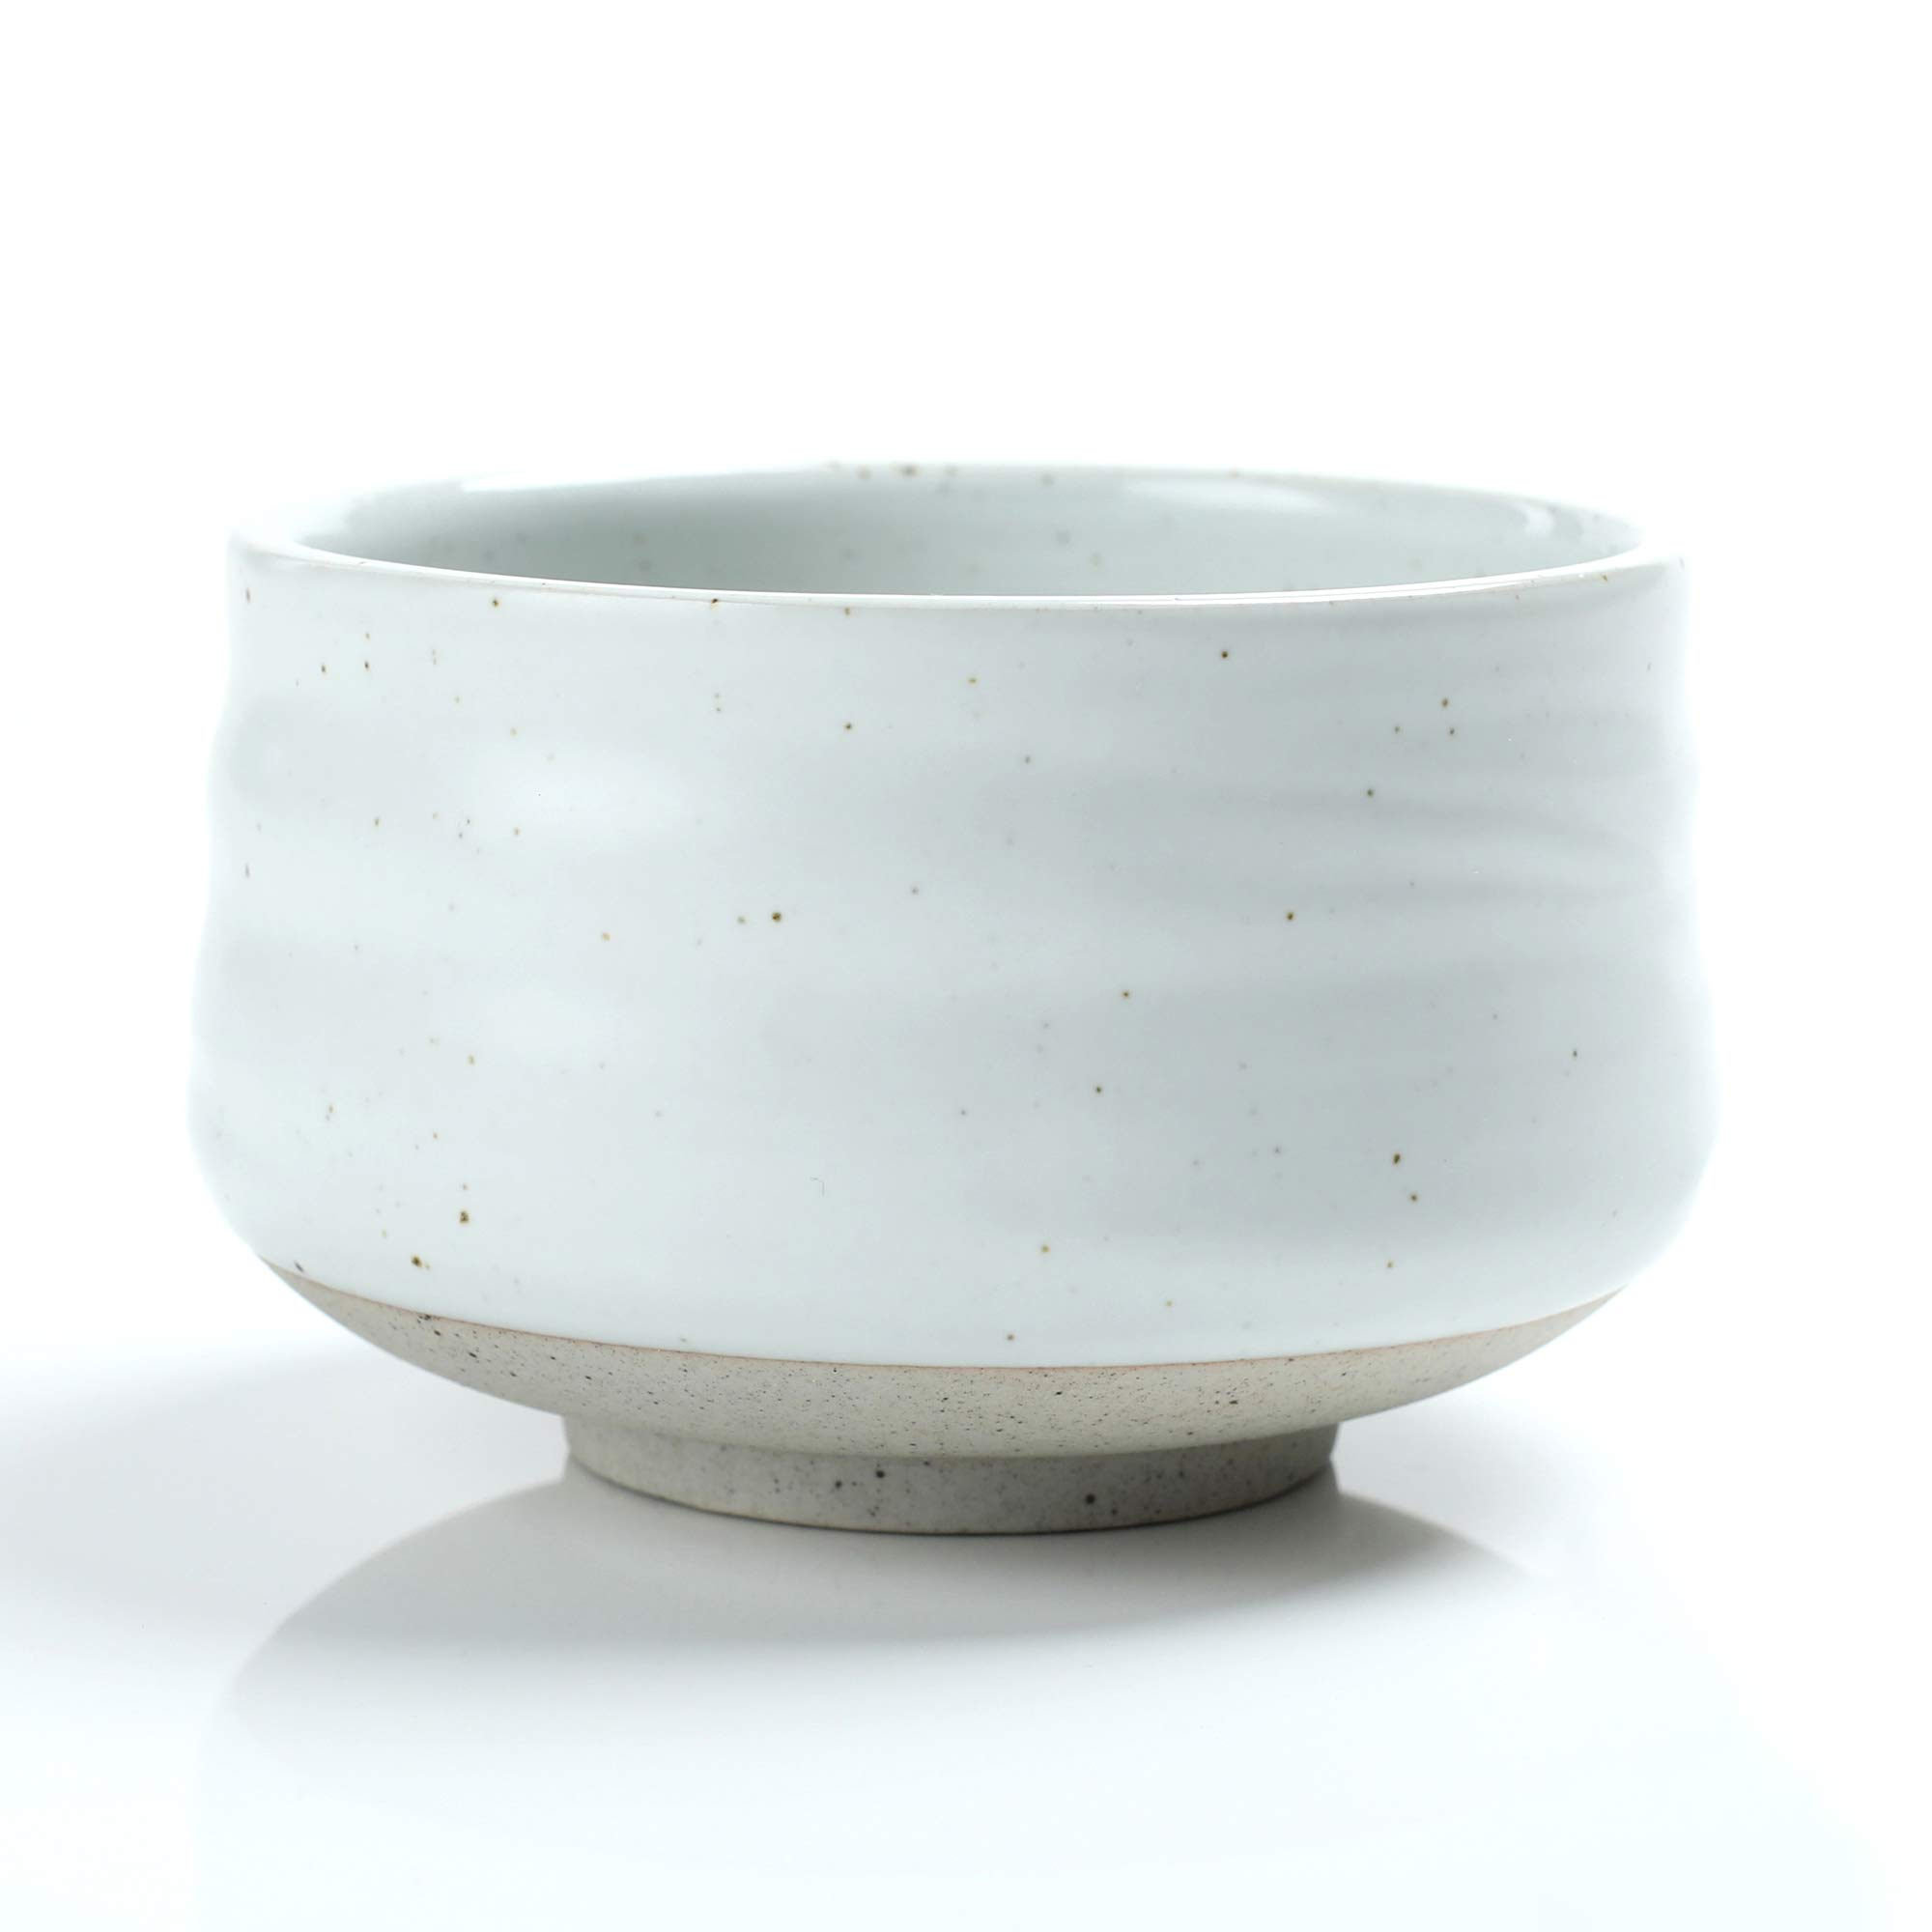 Japanese Ivory White Matcha Bowl, 18 OZ. TEANAGOO MB-1 Chawan Matcha Tea Bowl, Matcha Ceramic Bowl, Tea Bowls For Matcha, Matcha Bowl Chawan, Ceramic Matcha Bowl Traditional Ceremonial Accessories